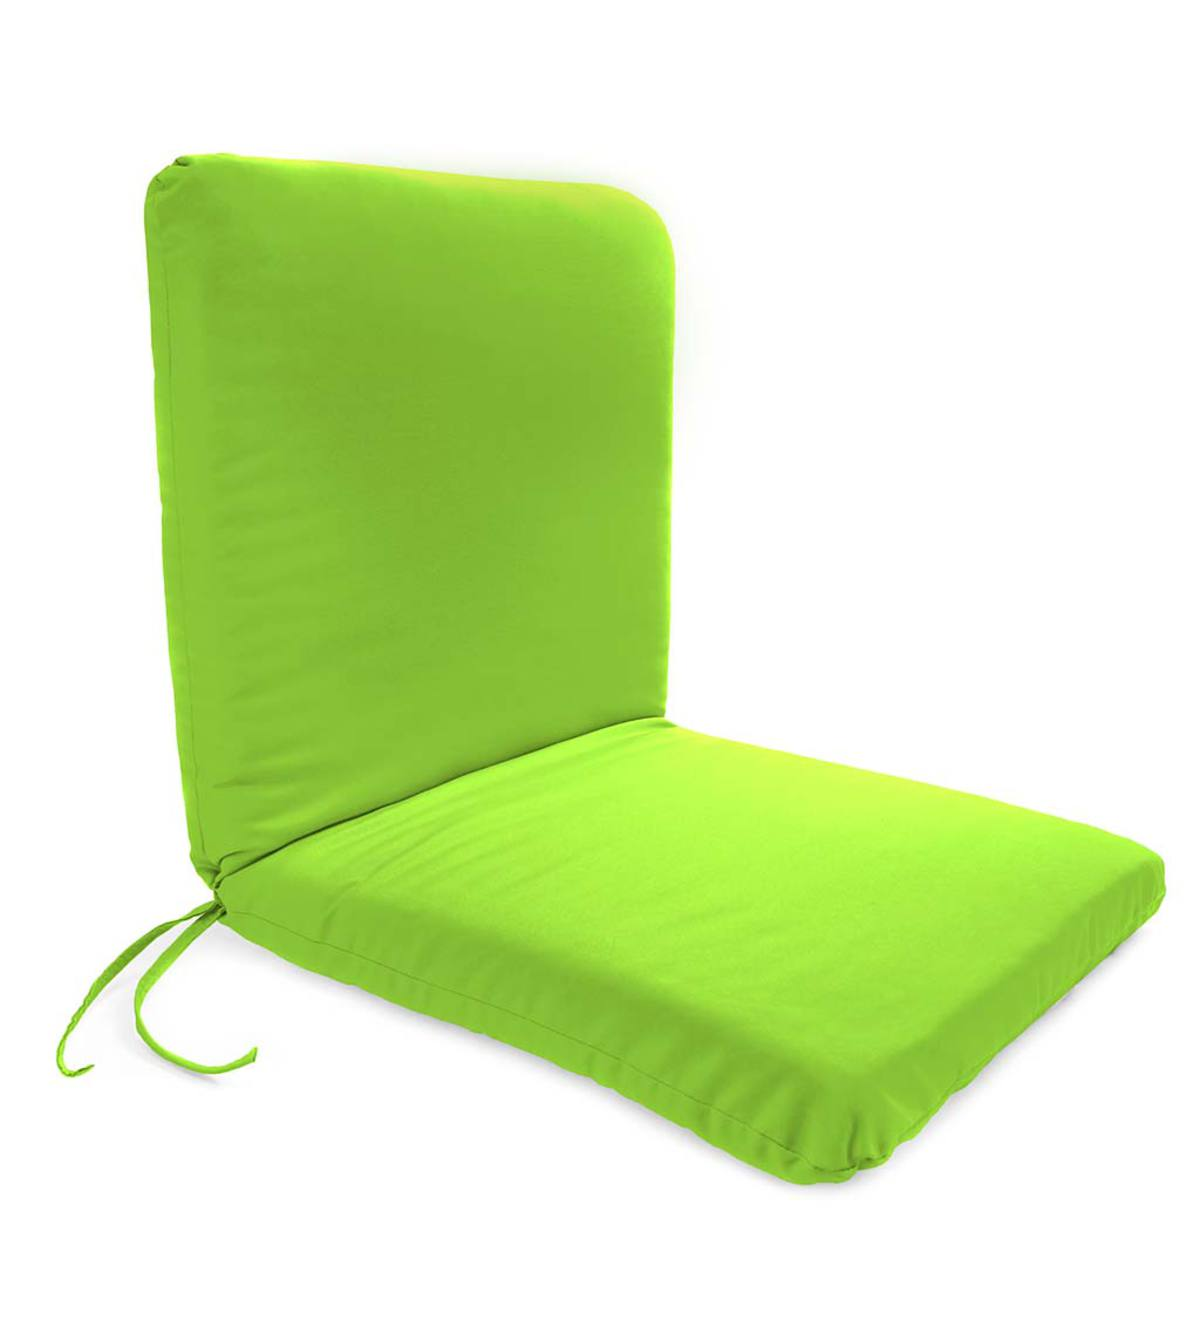 Beau Polyester Classic Chair Cushion With Ties, Seat 19u201dx 17u201dx 2½u201d